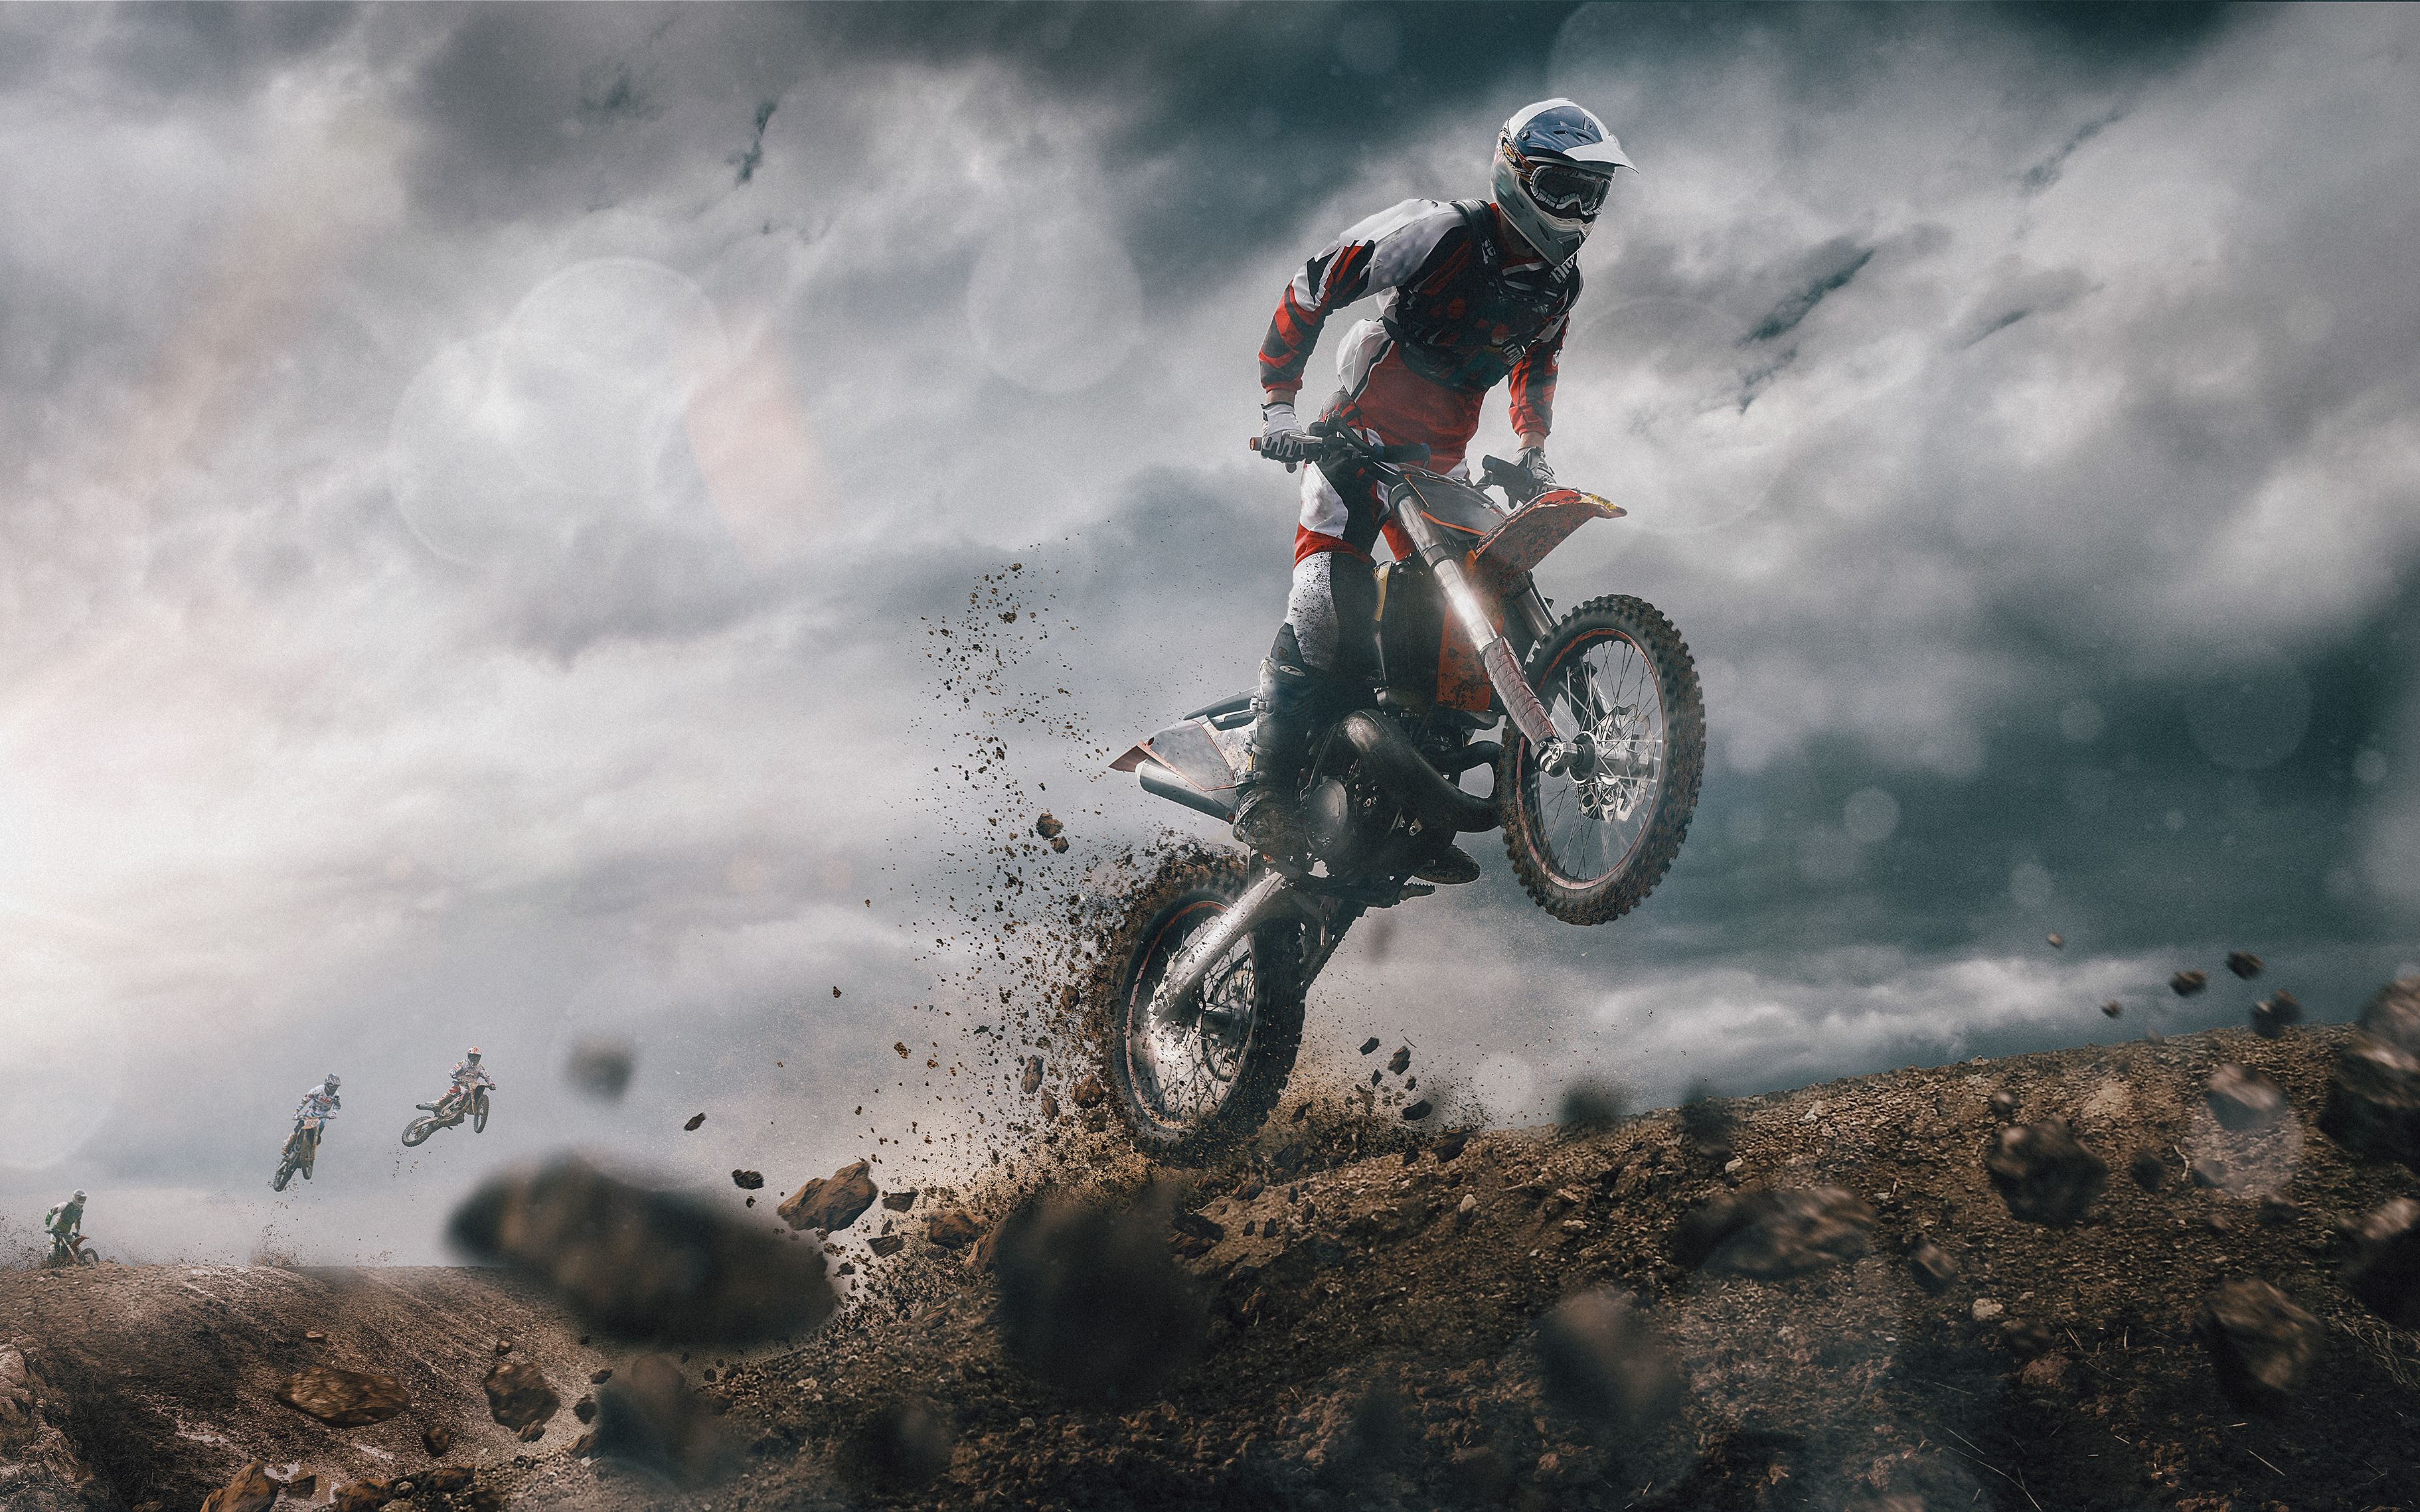 Motocross 4k With Images Motorcycle Wallpaper Motocross